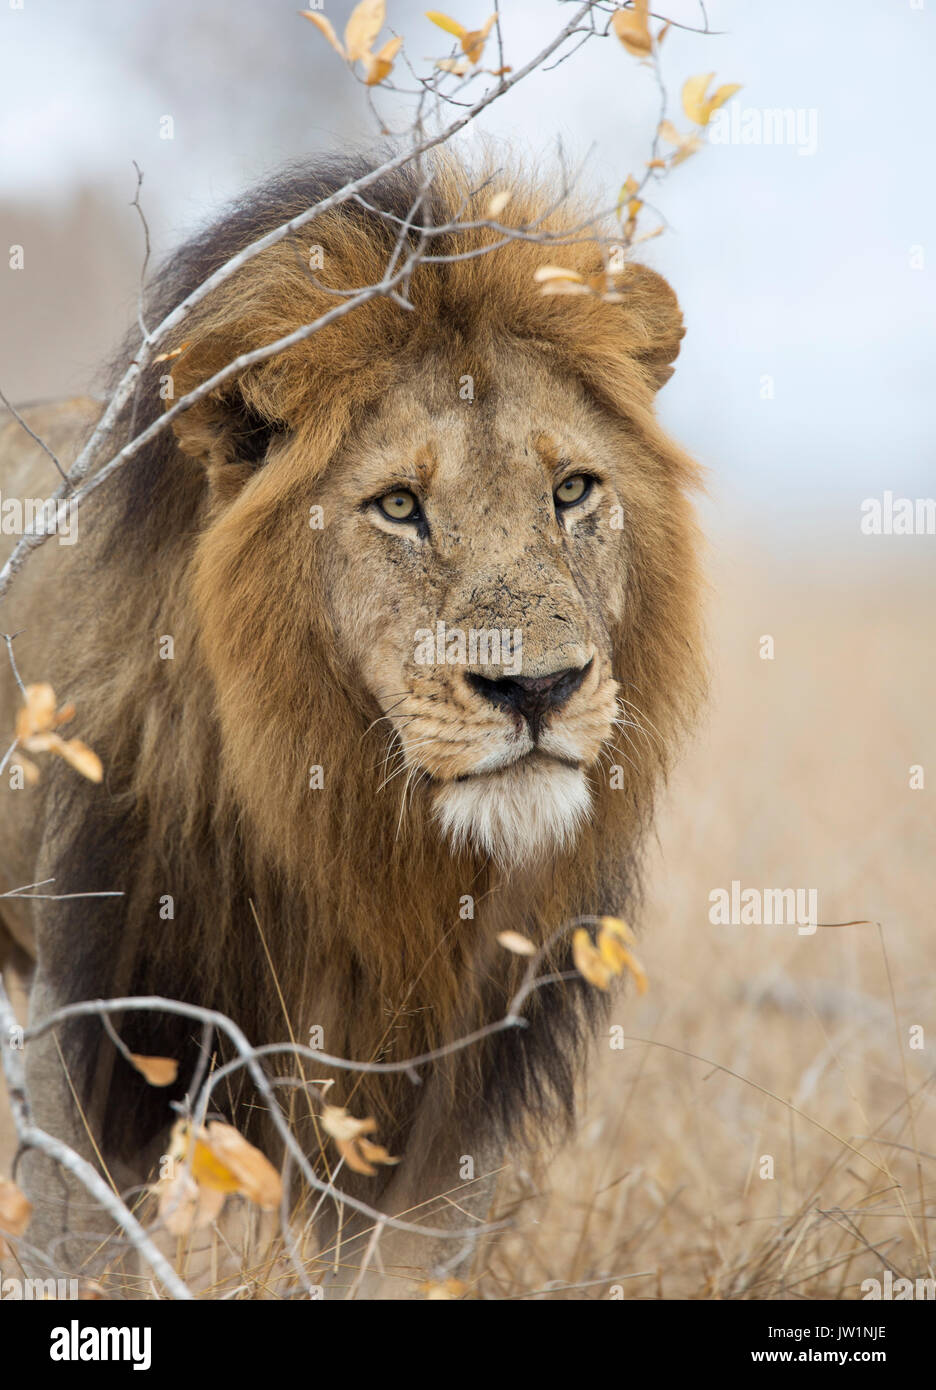 Portrait of an adult male lion (Panthera leo) with large mane - Stock Image